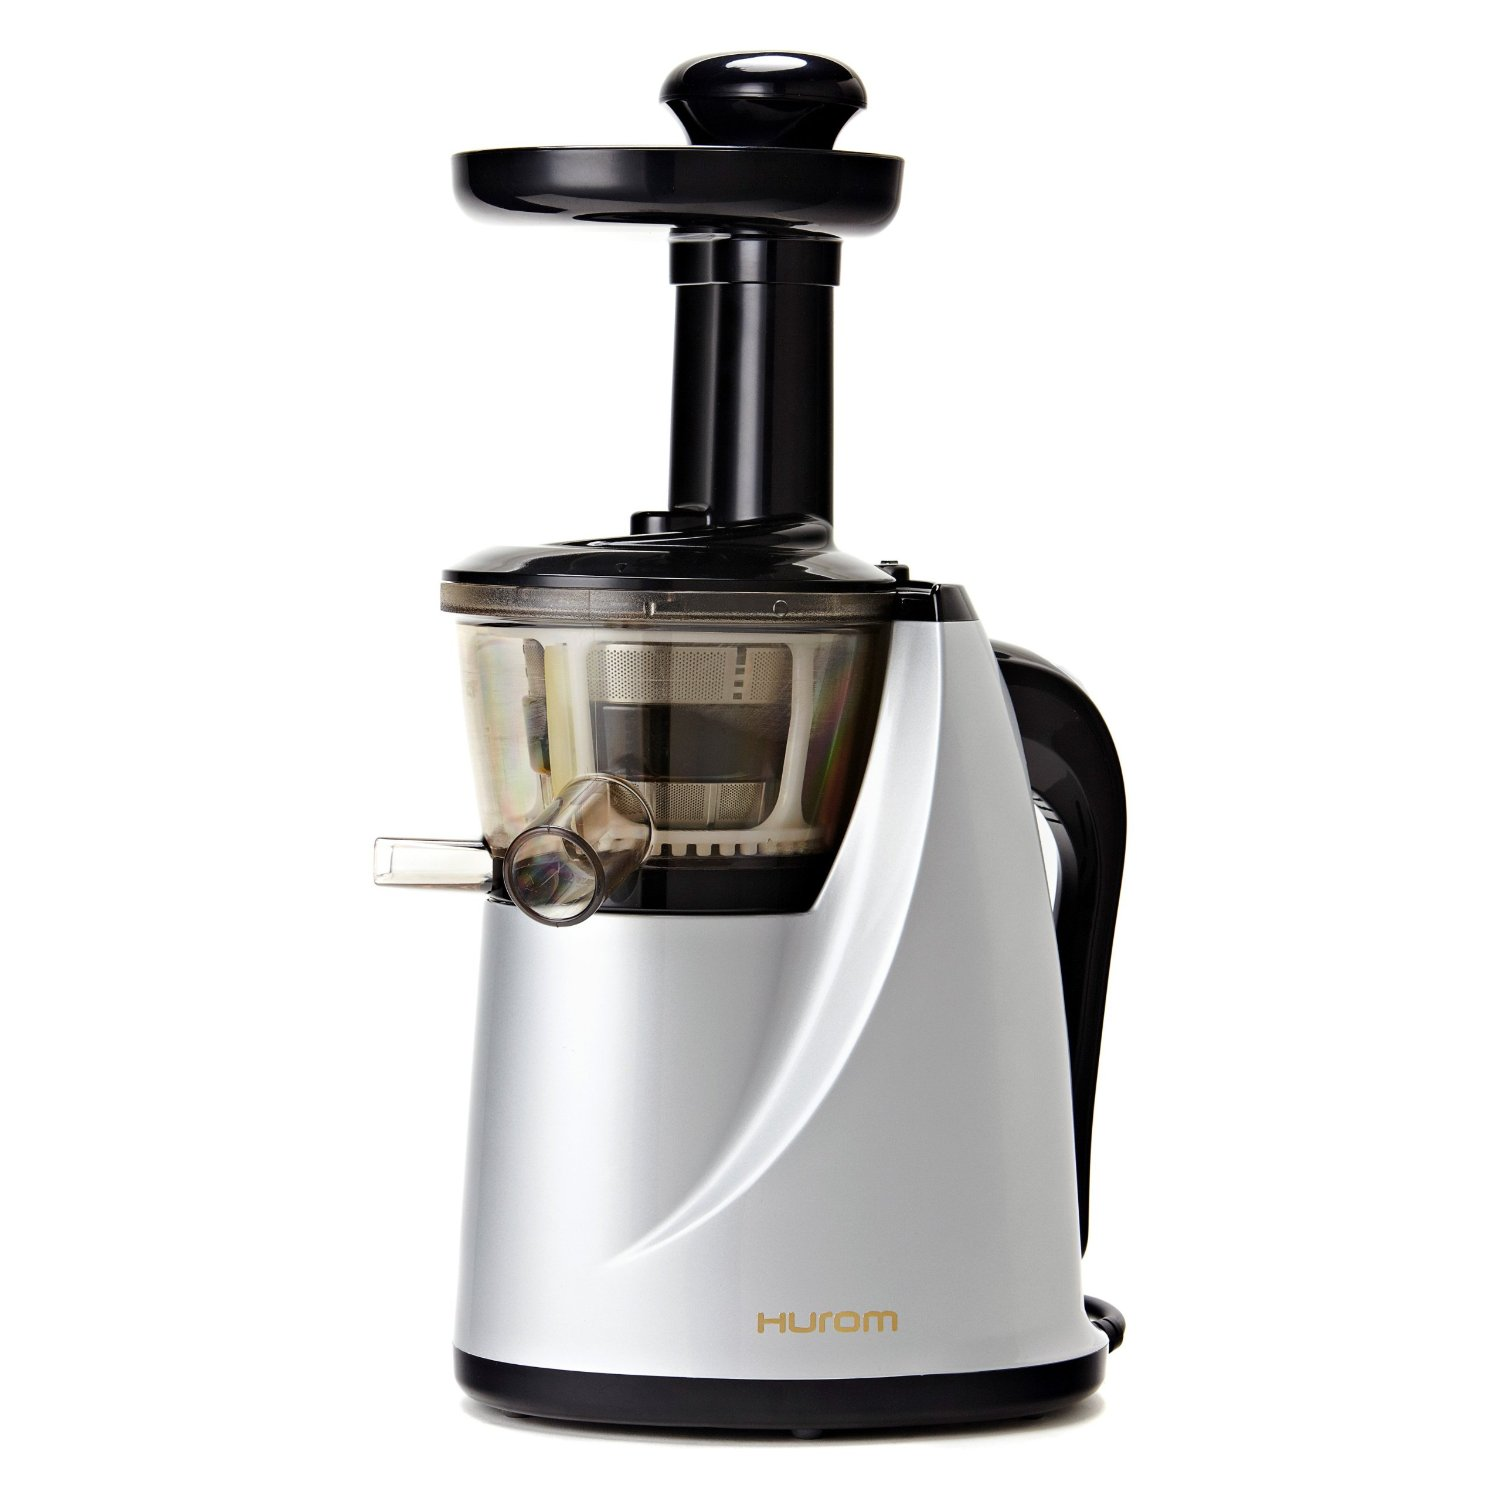 Best Masticating Juicer Deals : Hurom Juicer Reviews